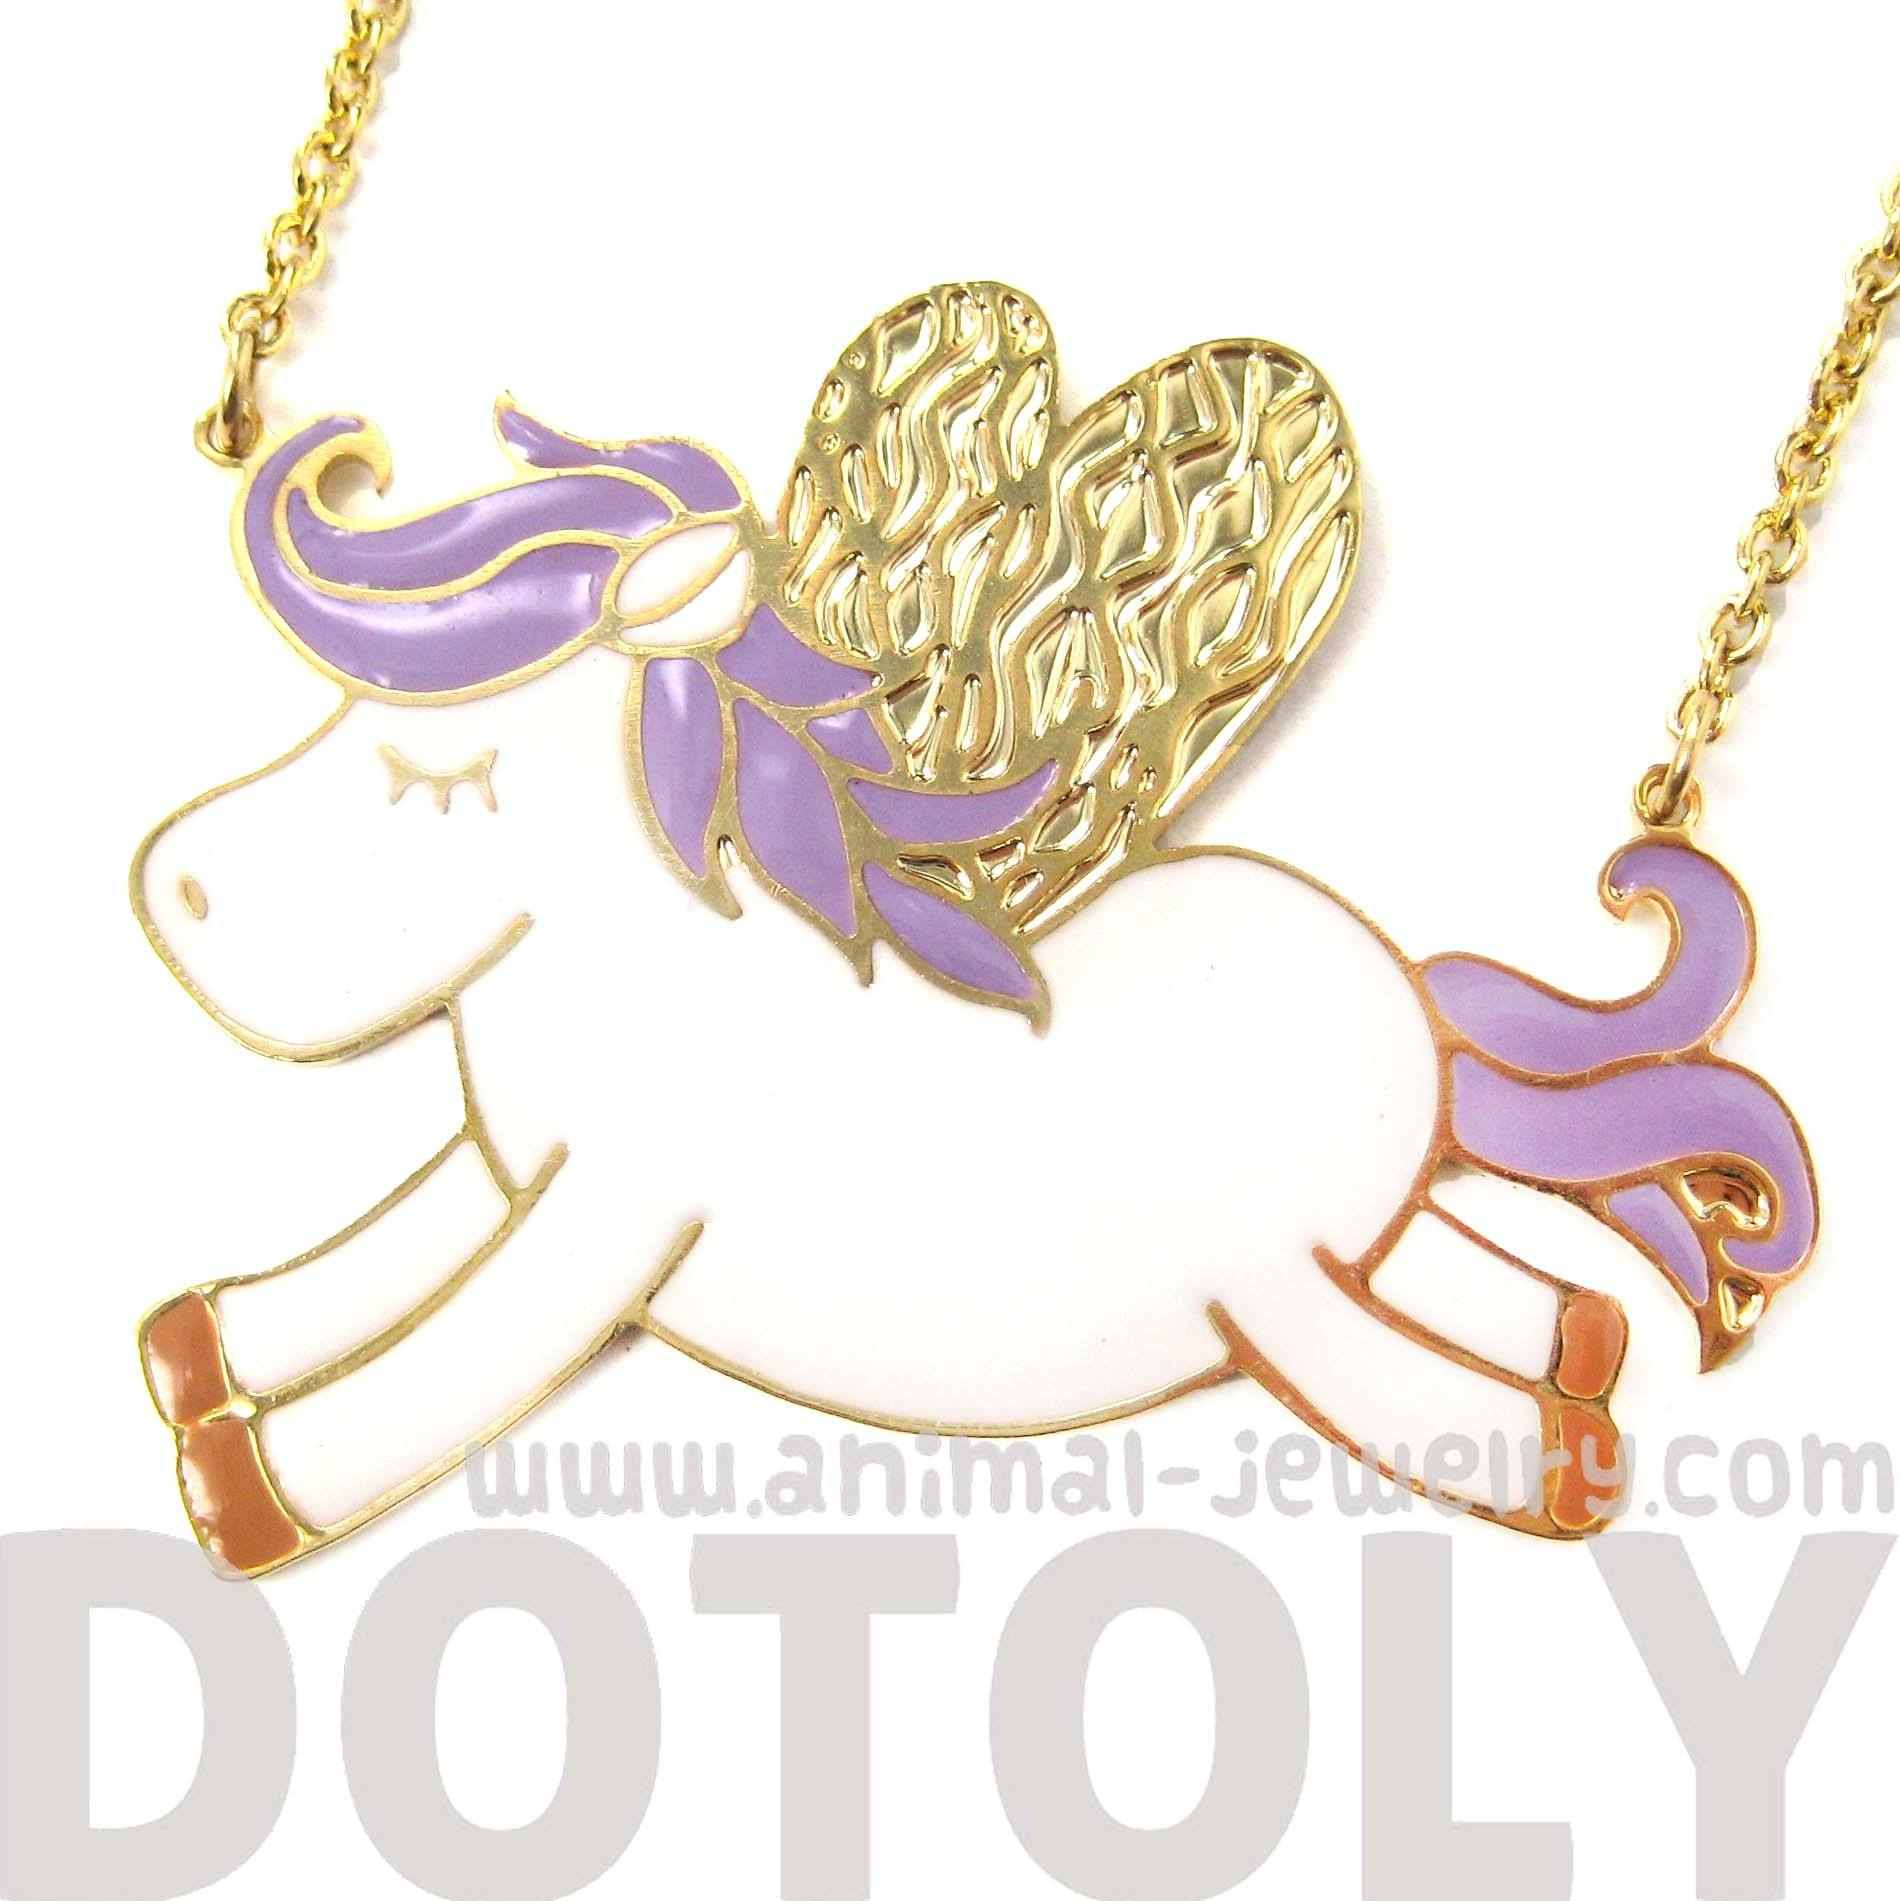 adorable-pegasus-horse-animal-pendant-necklace-in-purple-on-gold-limited-edition